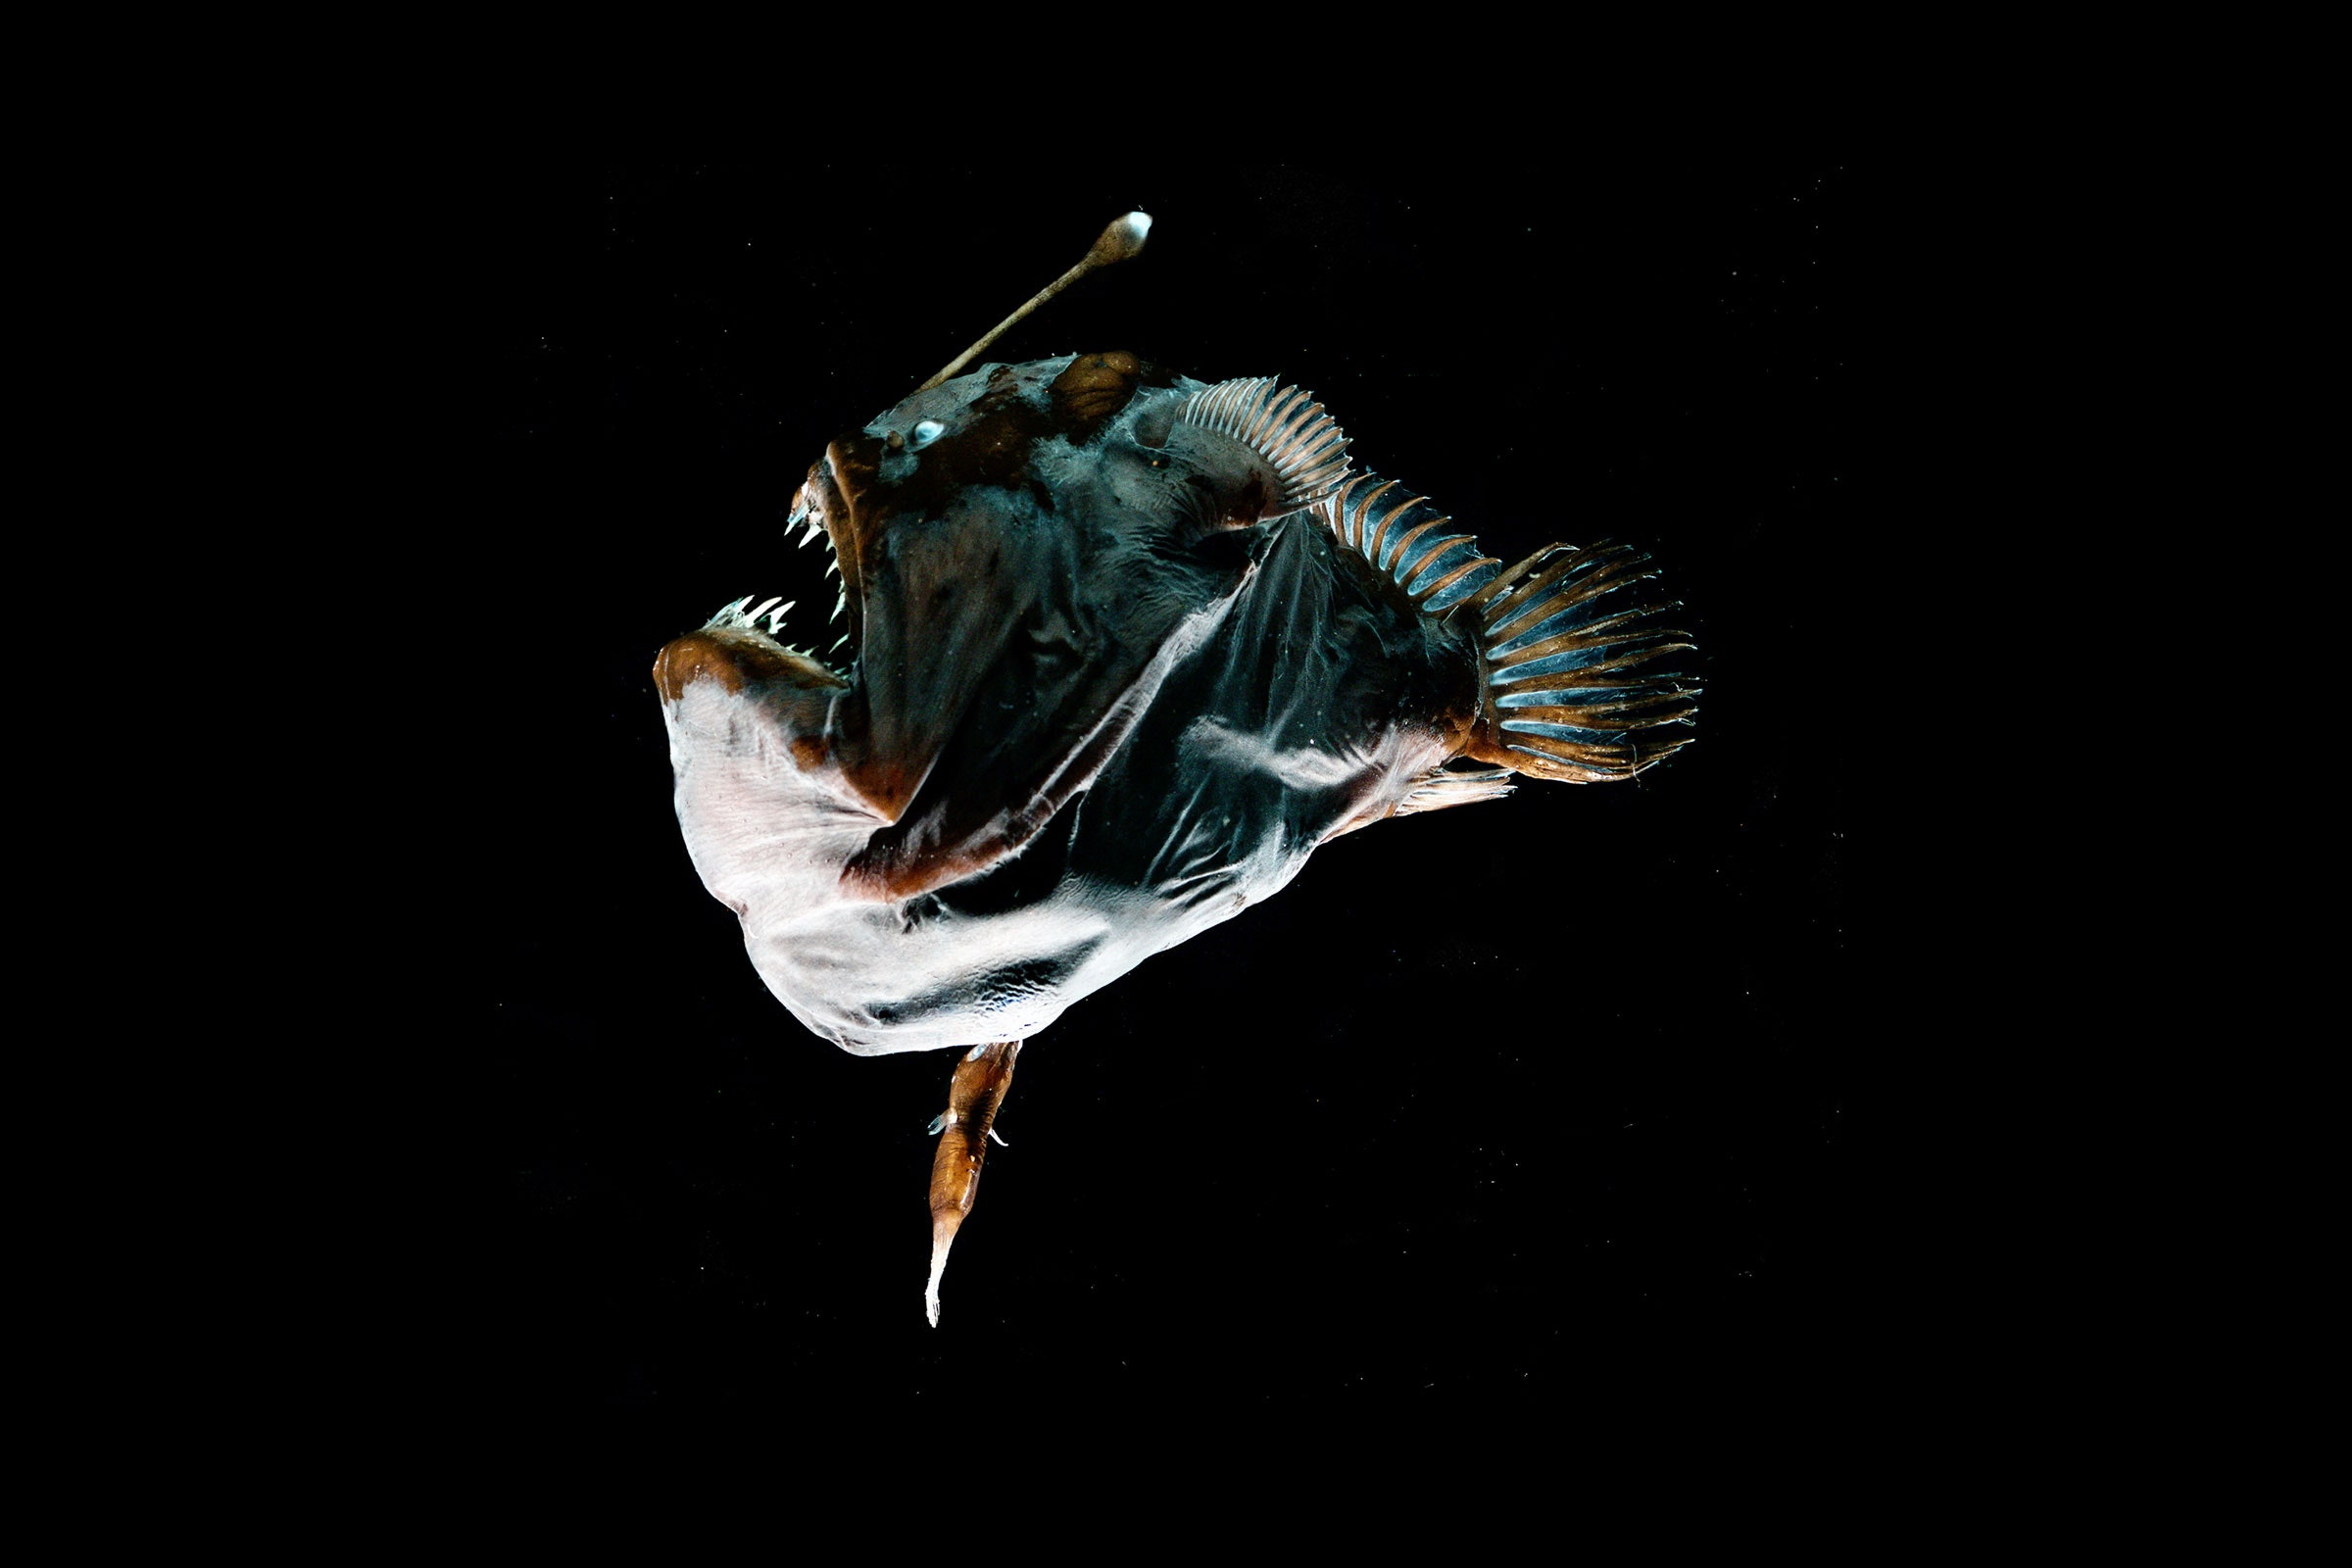 The Anglerfish Deleted Its Immune System to Fuse With Its Mate